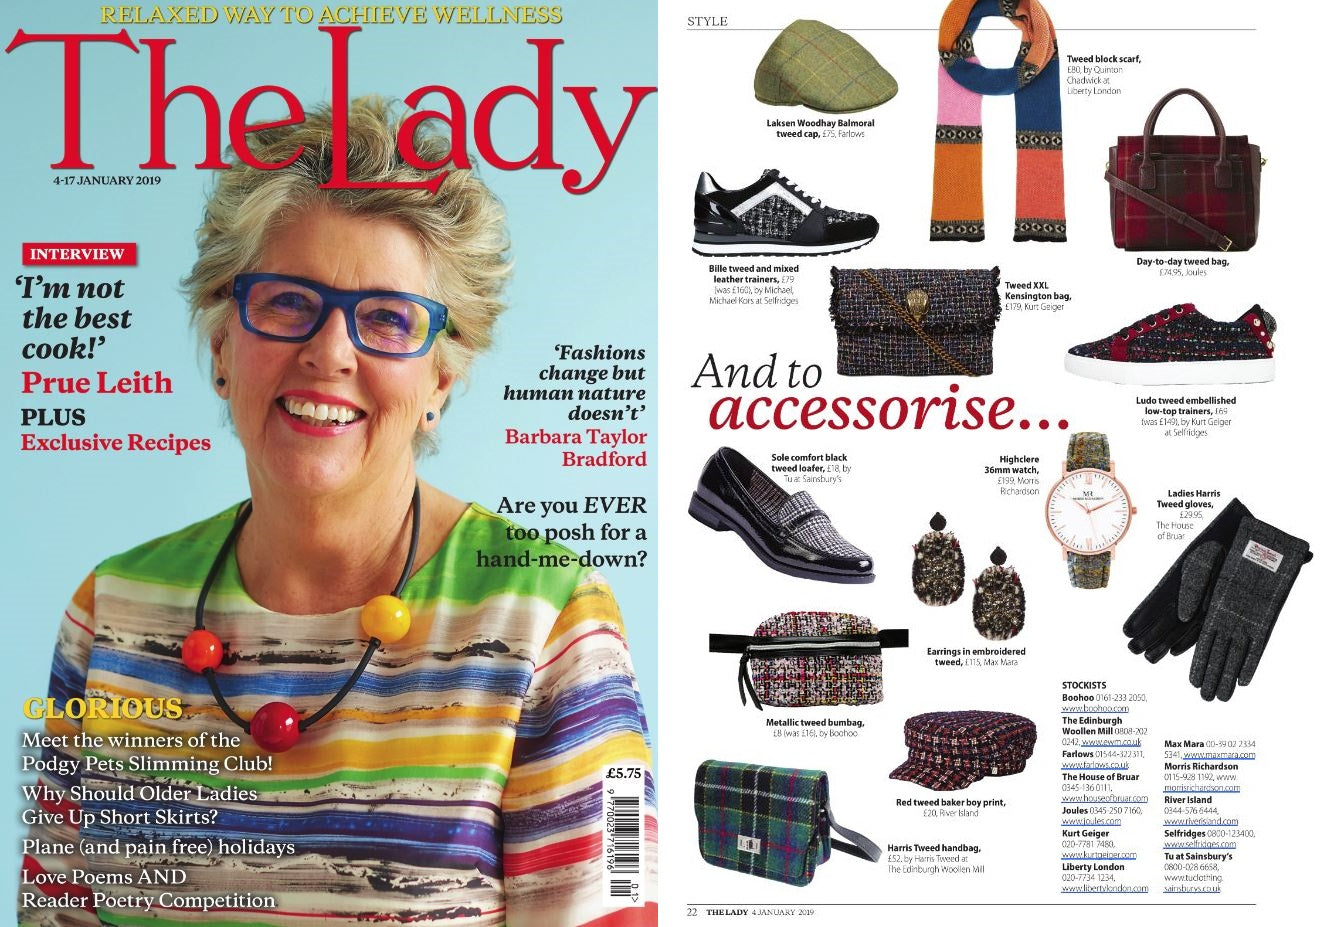 Morris Richardson's Feature in The Lady Magazine